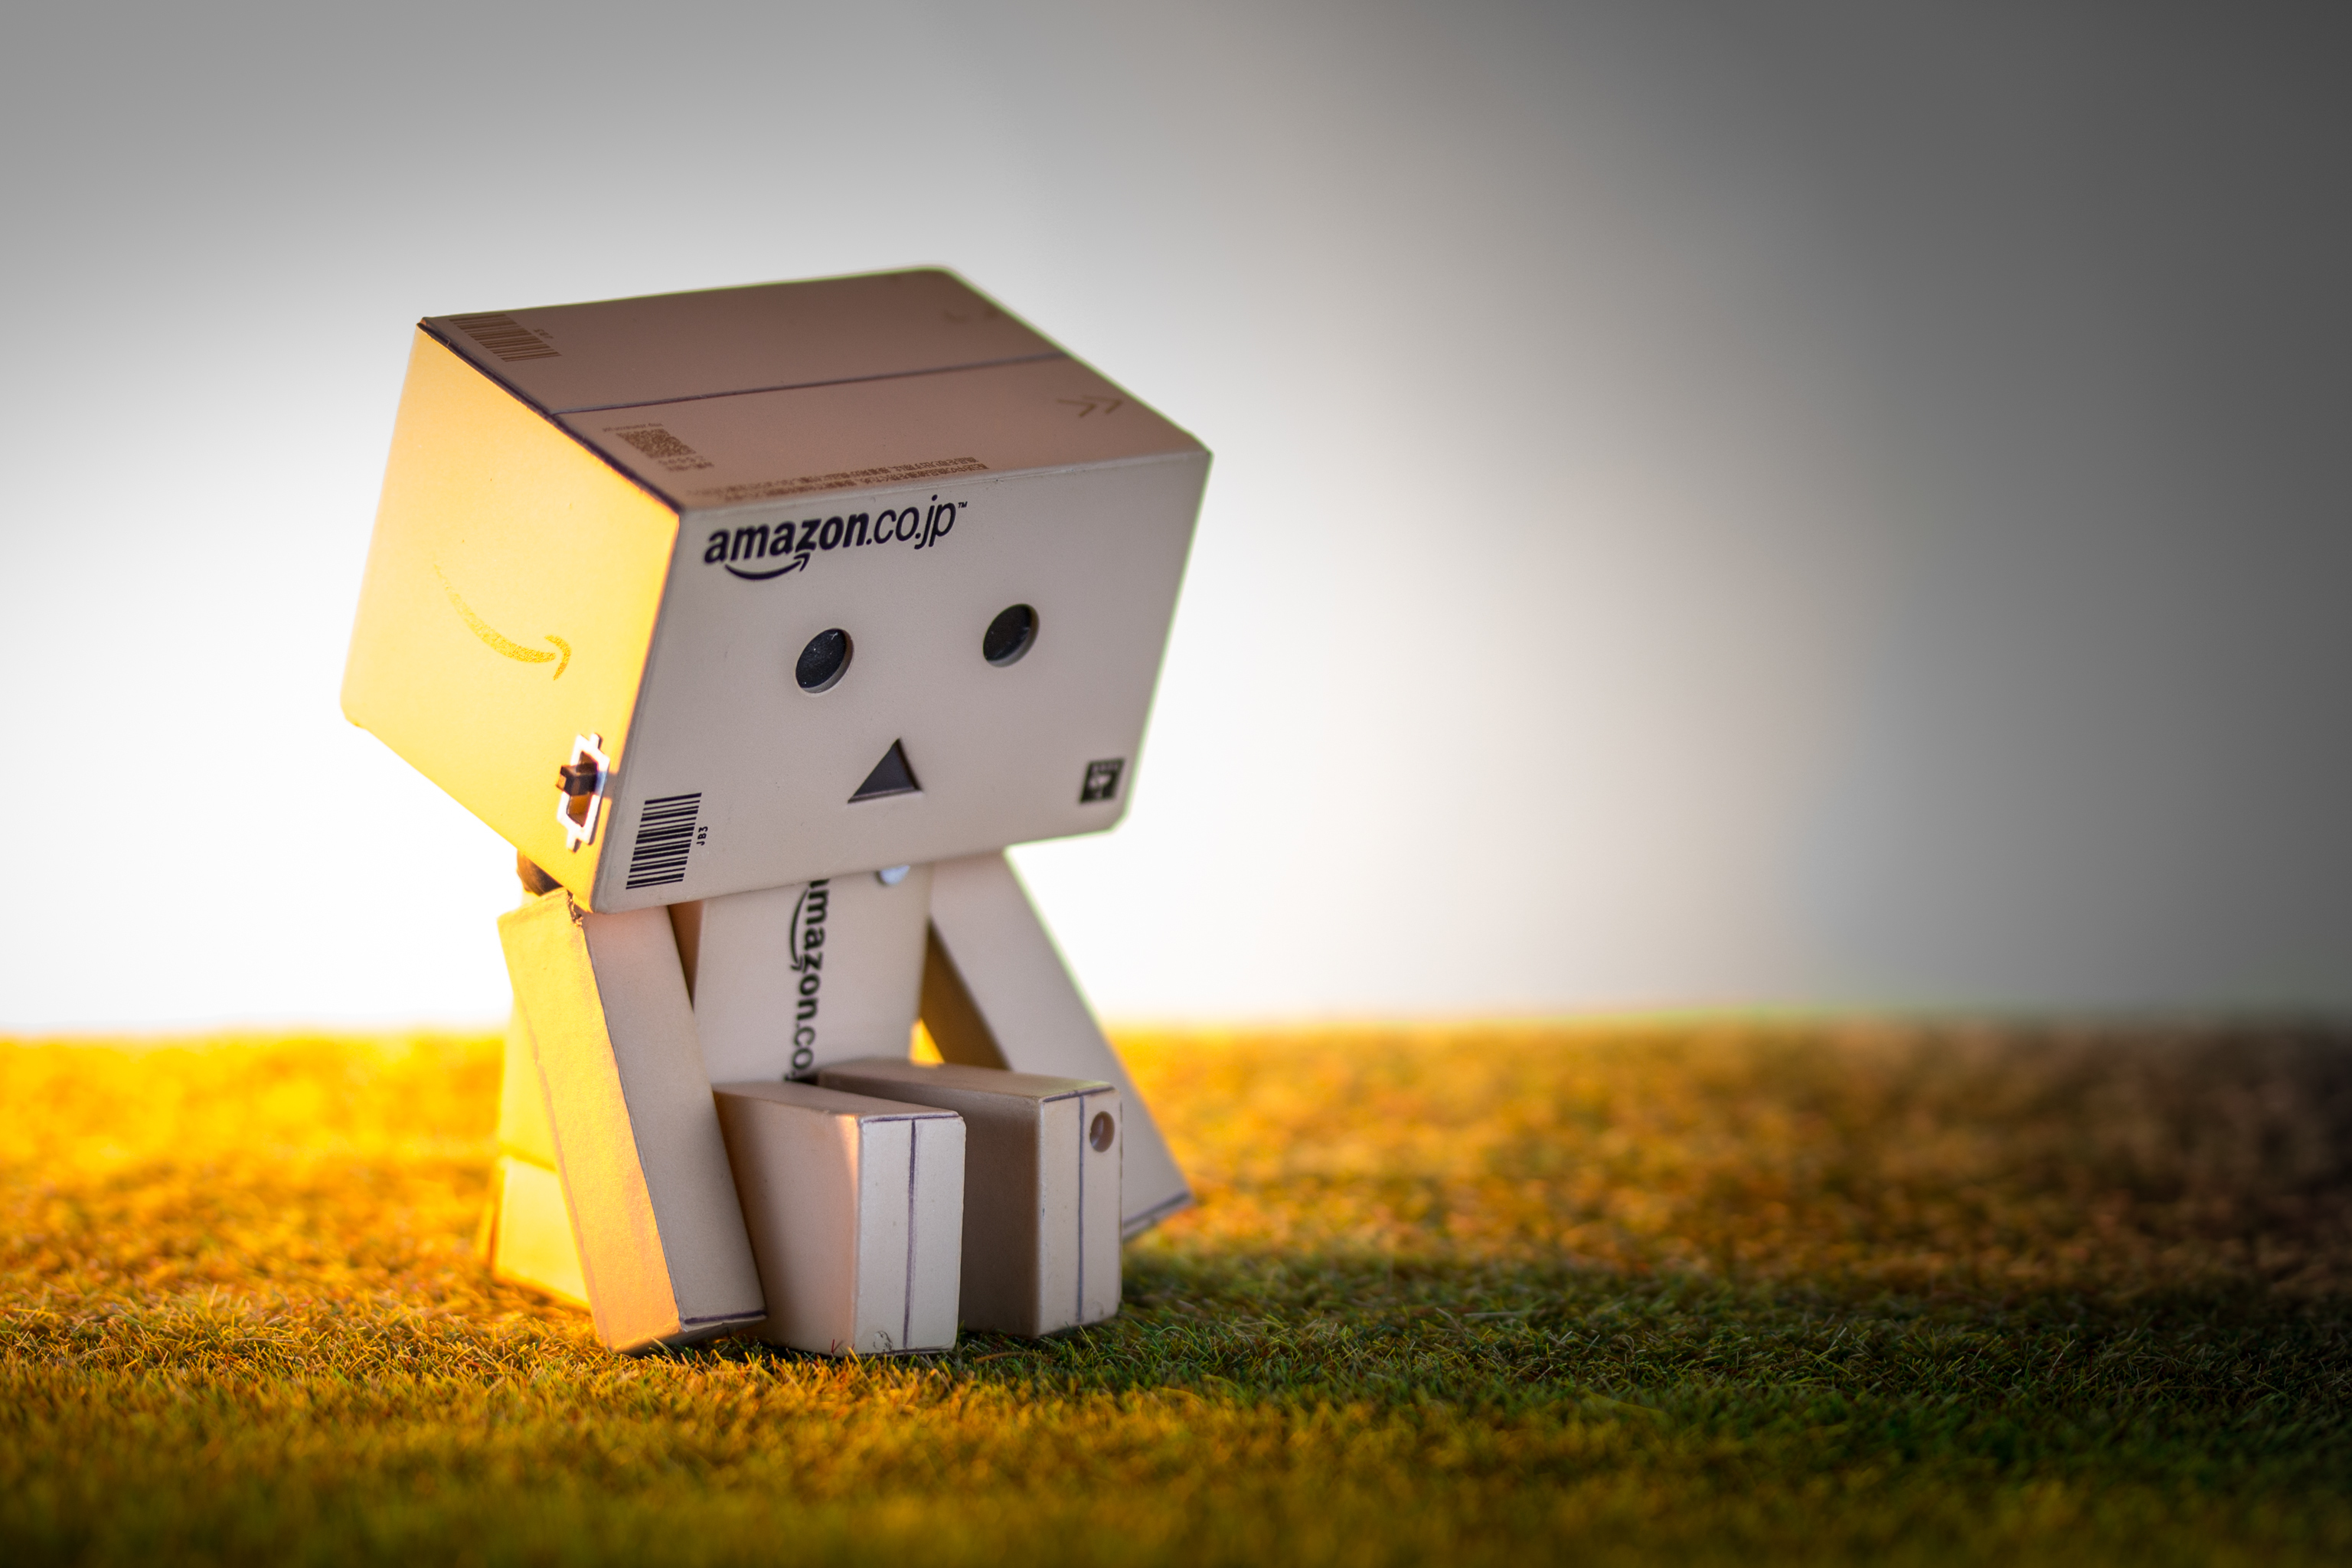 Danbo HD Wallpaper Background Image 3072x2048 ID735098 3072x2048